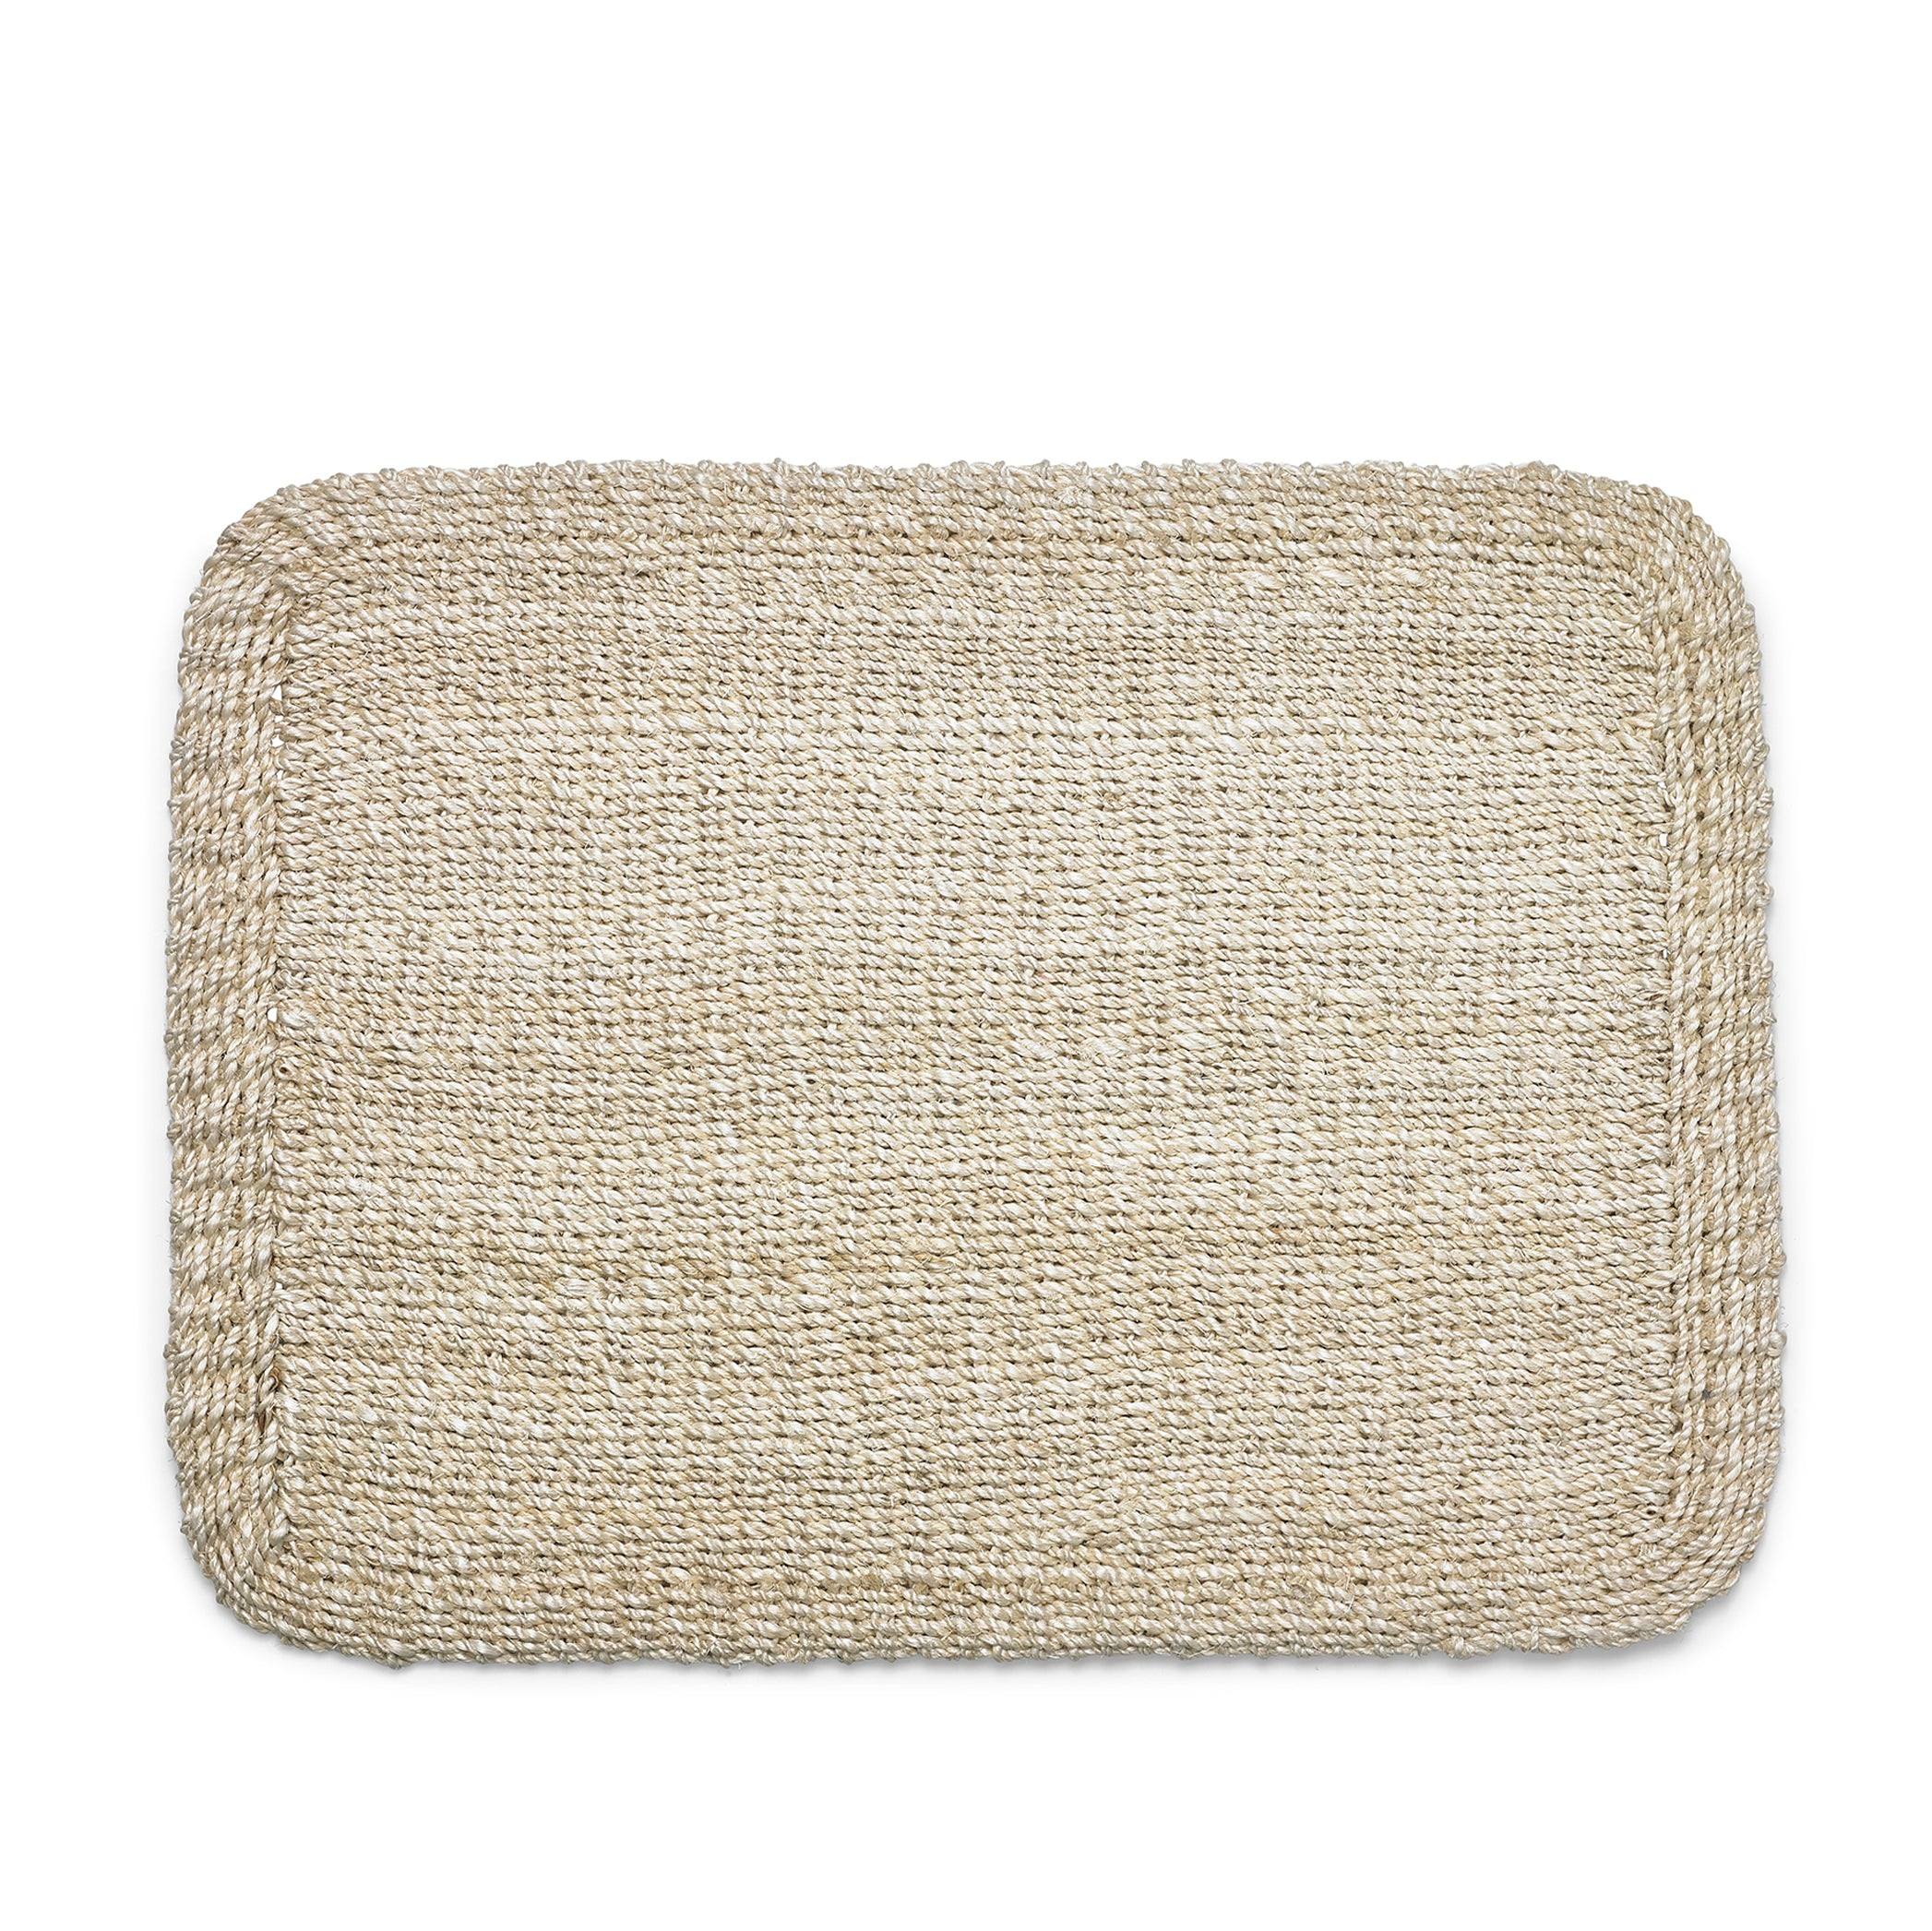 Abaca Woven Rectangular Placemat in Cream